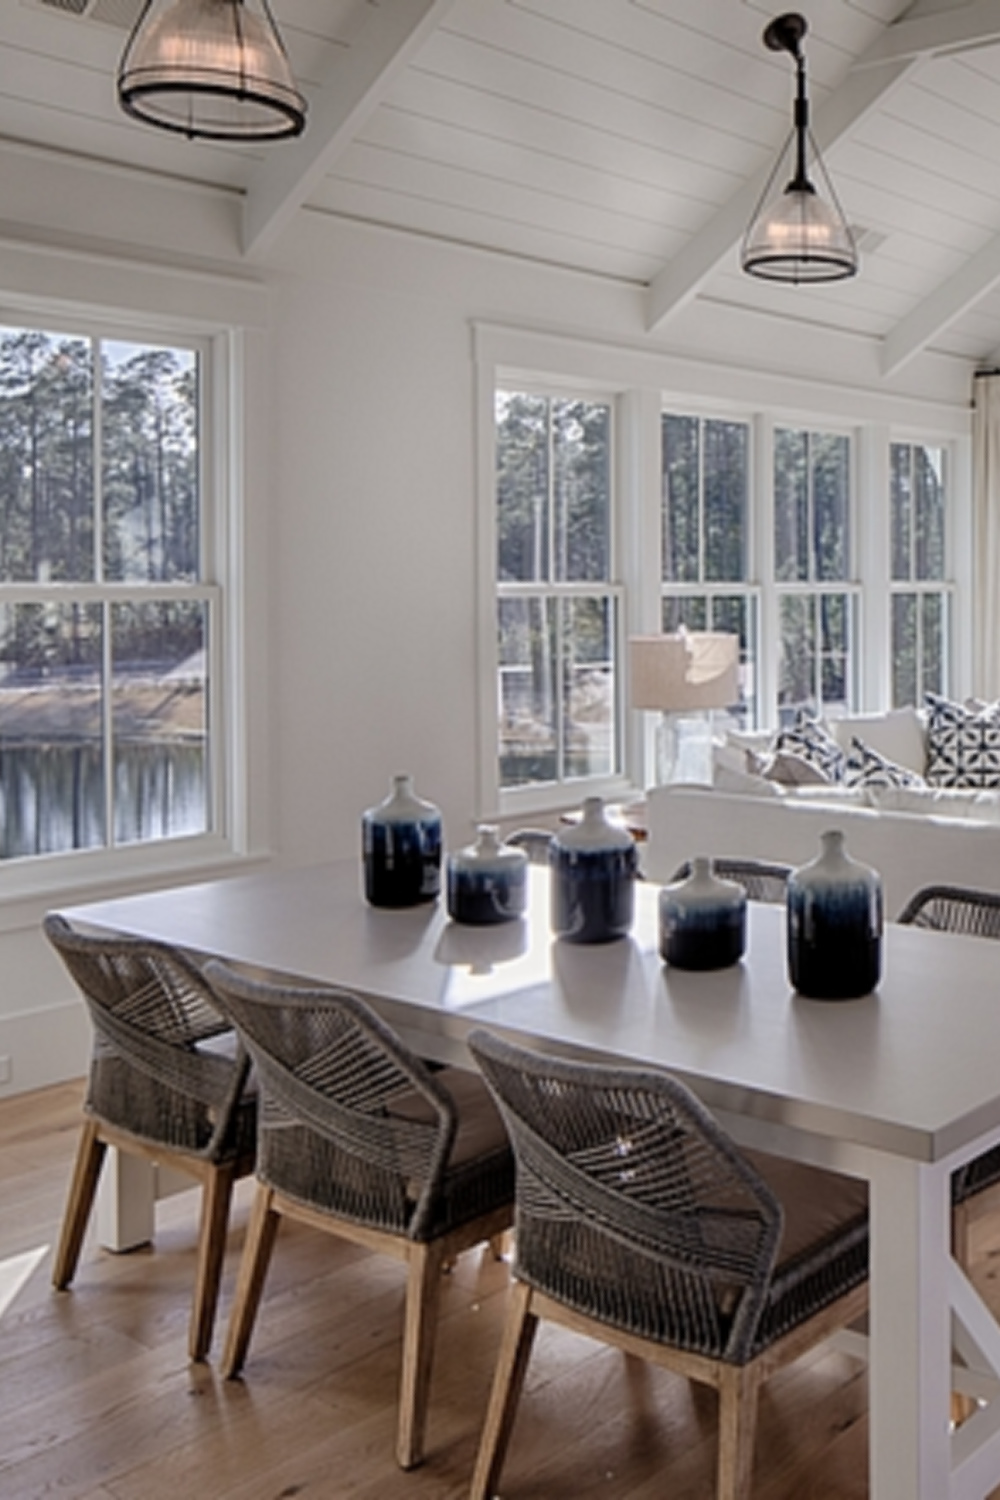 Shiplap on walls and ceilings of a great room in a board and batten coastal cottage by Lisa Furey. #shiplap #greatroom #interiordesign #coastalstyle #modernfarmhouse #benjaminmoorewhite